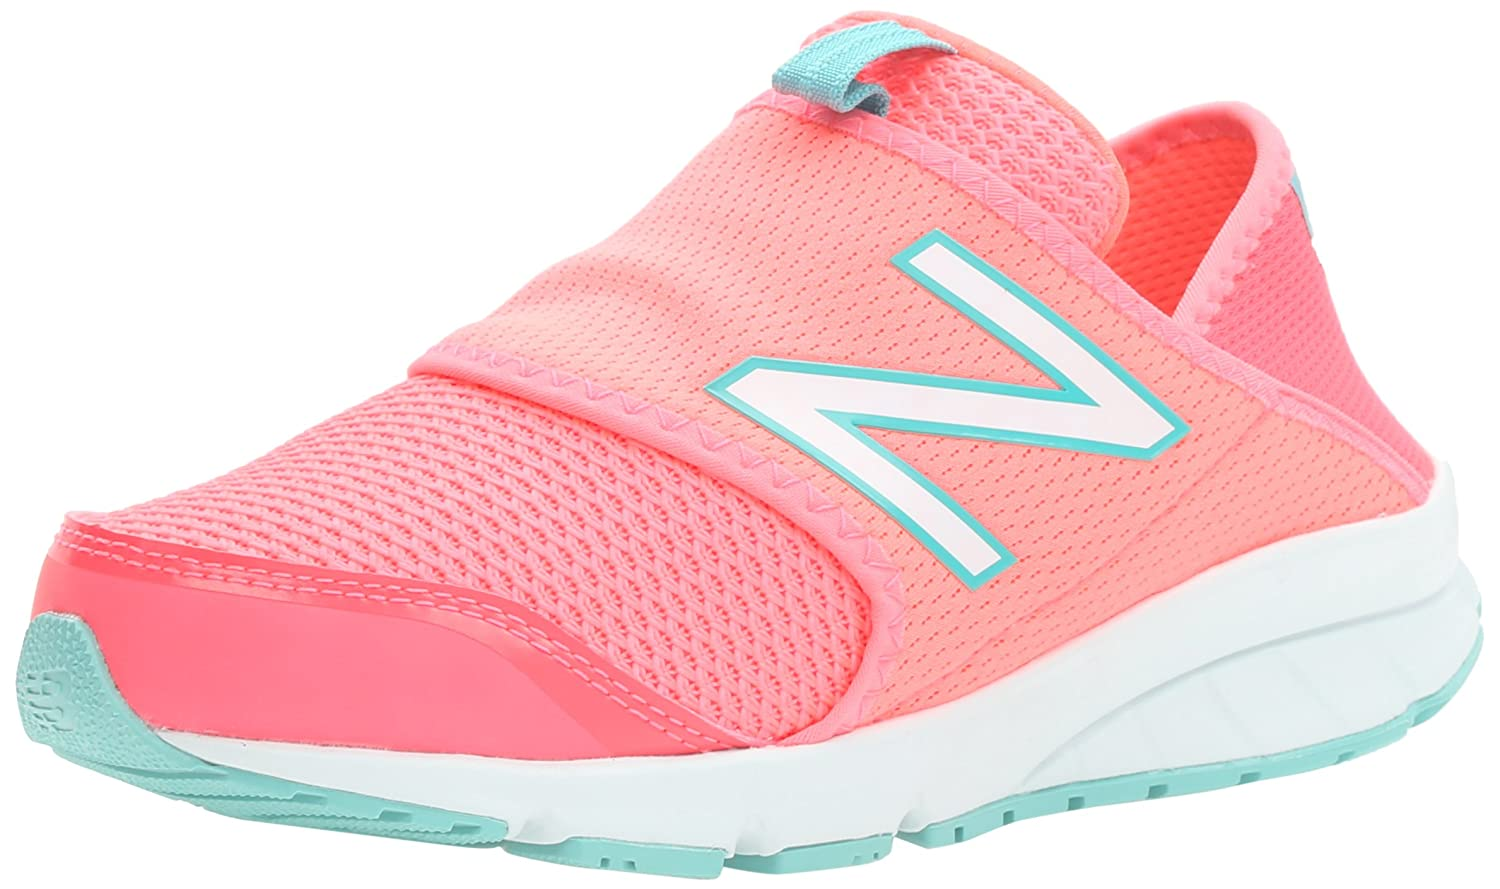 New Balance KJRUSV2 Grade Running Shoe (Big Kid), rosa/Teal, 7 M US Big Kid